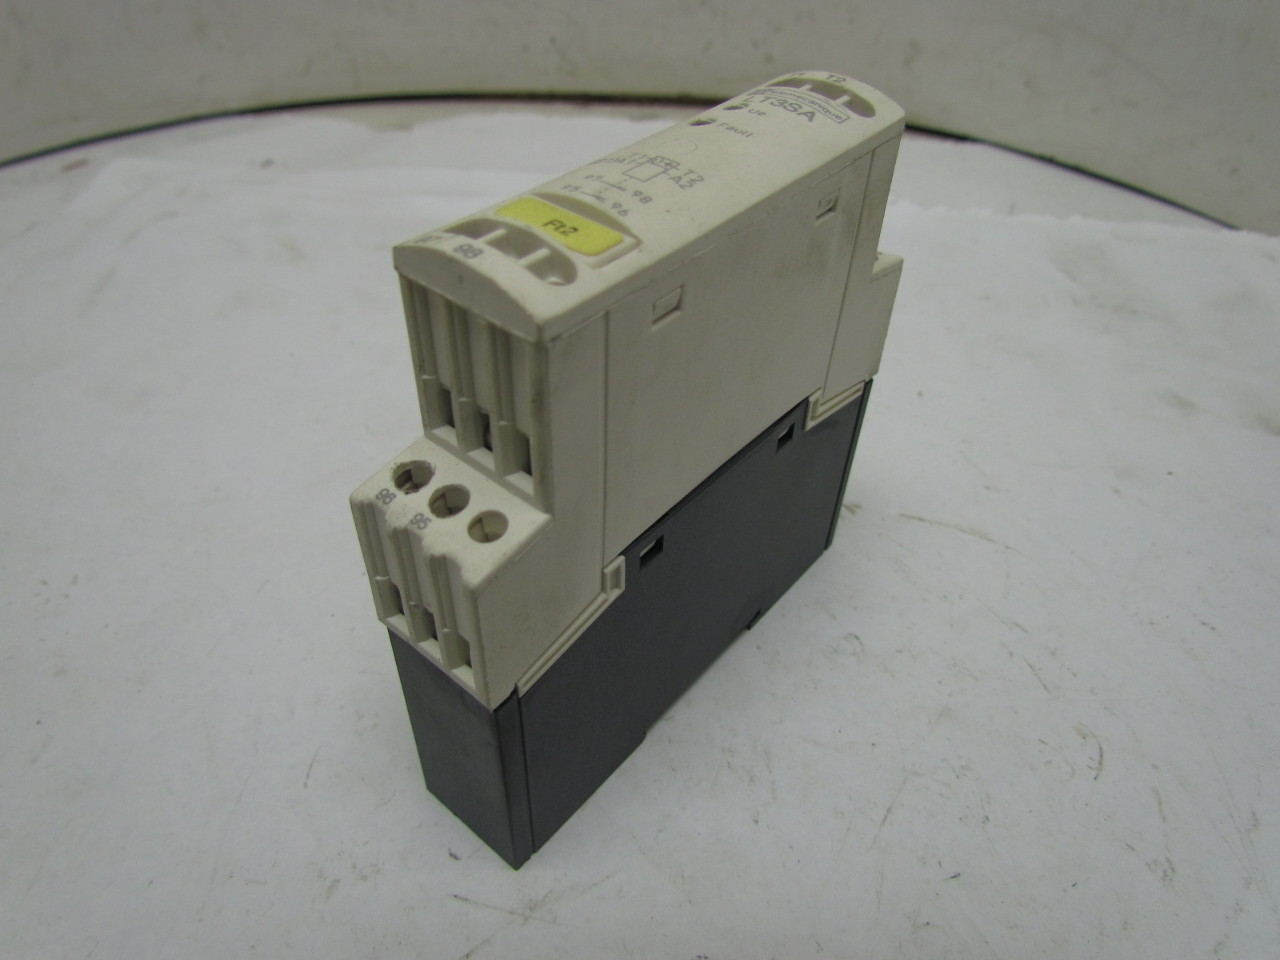 Ptc Thermistor Protection Relay 28 Images Application Note About Thermistor Motor Protection